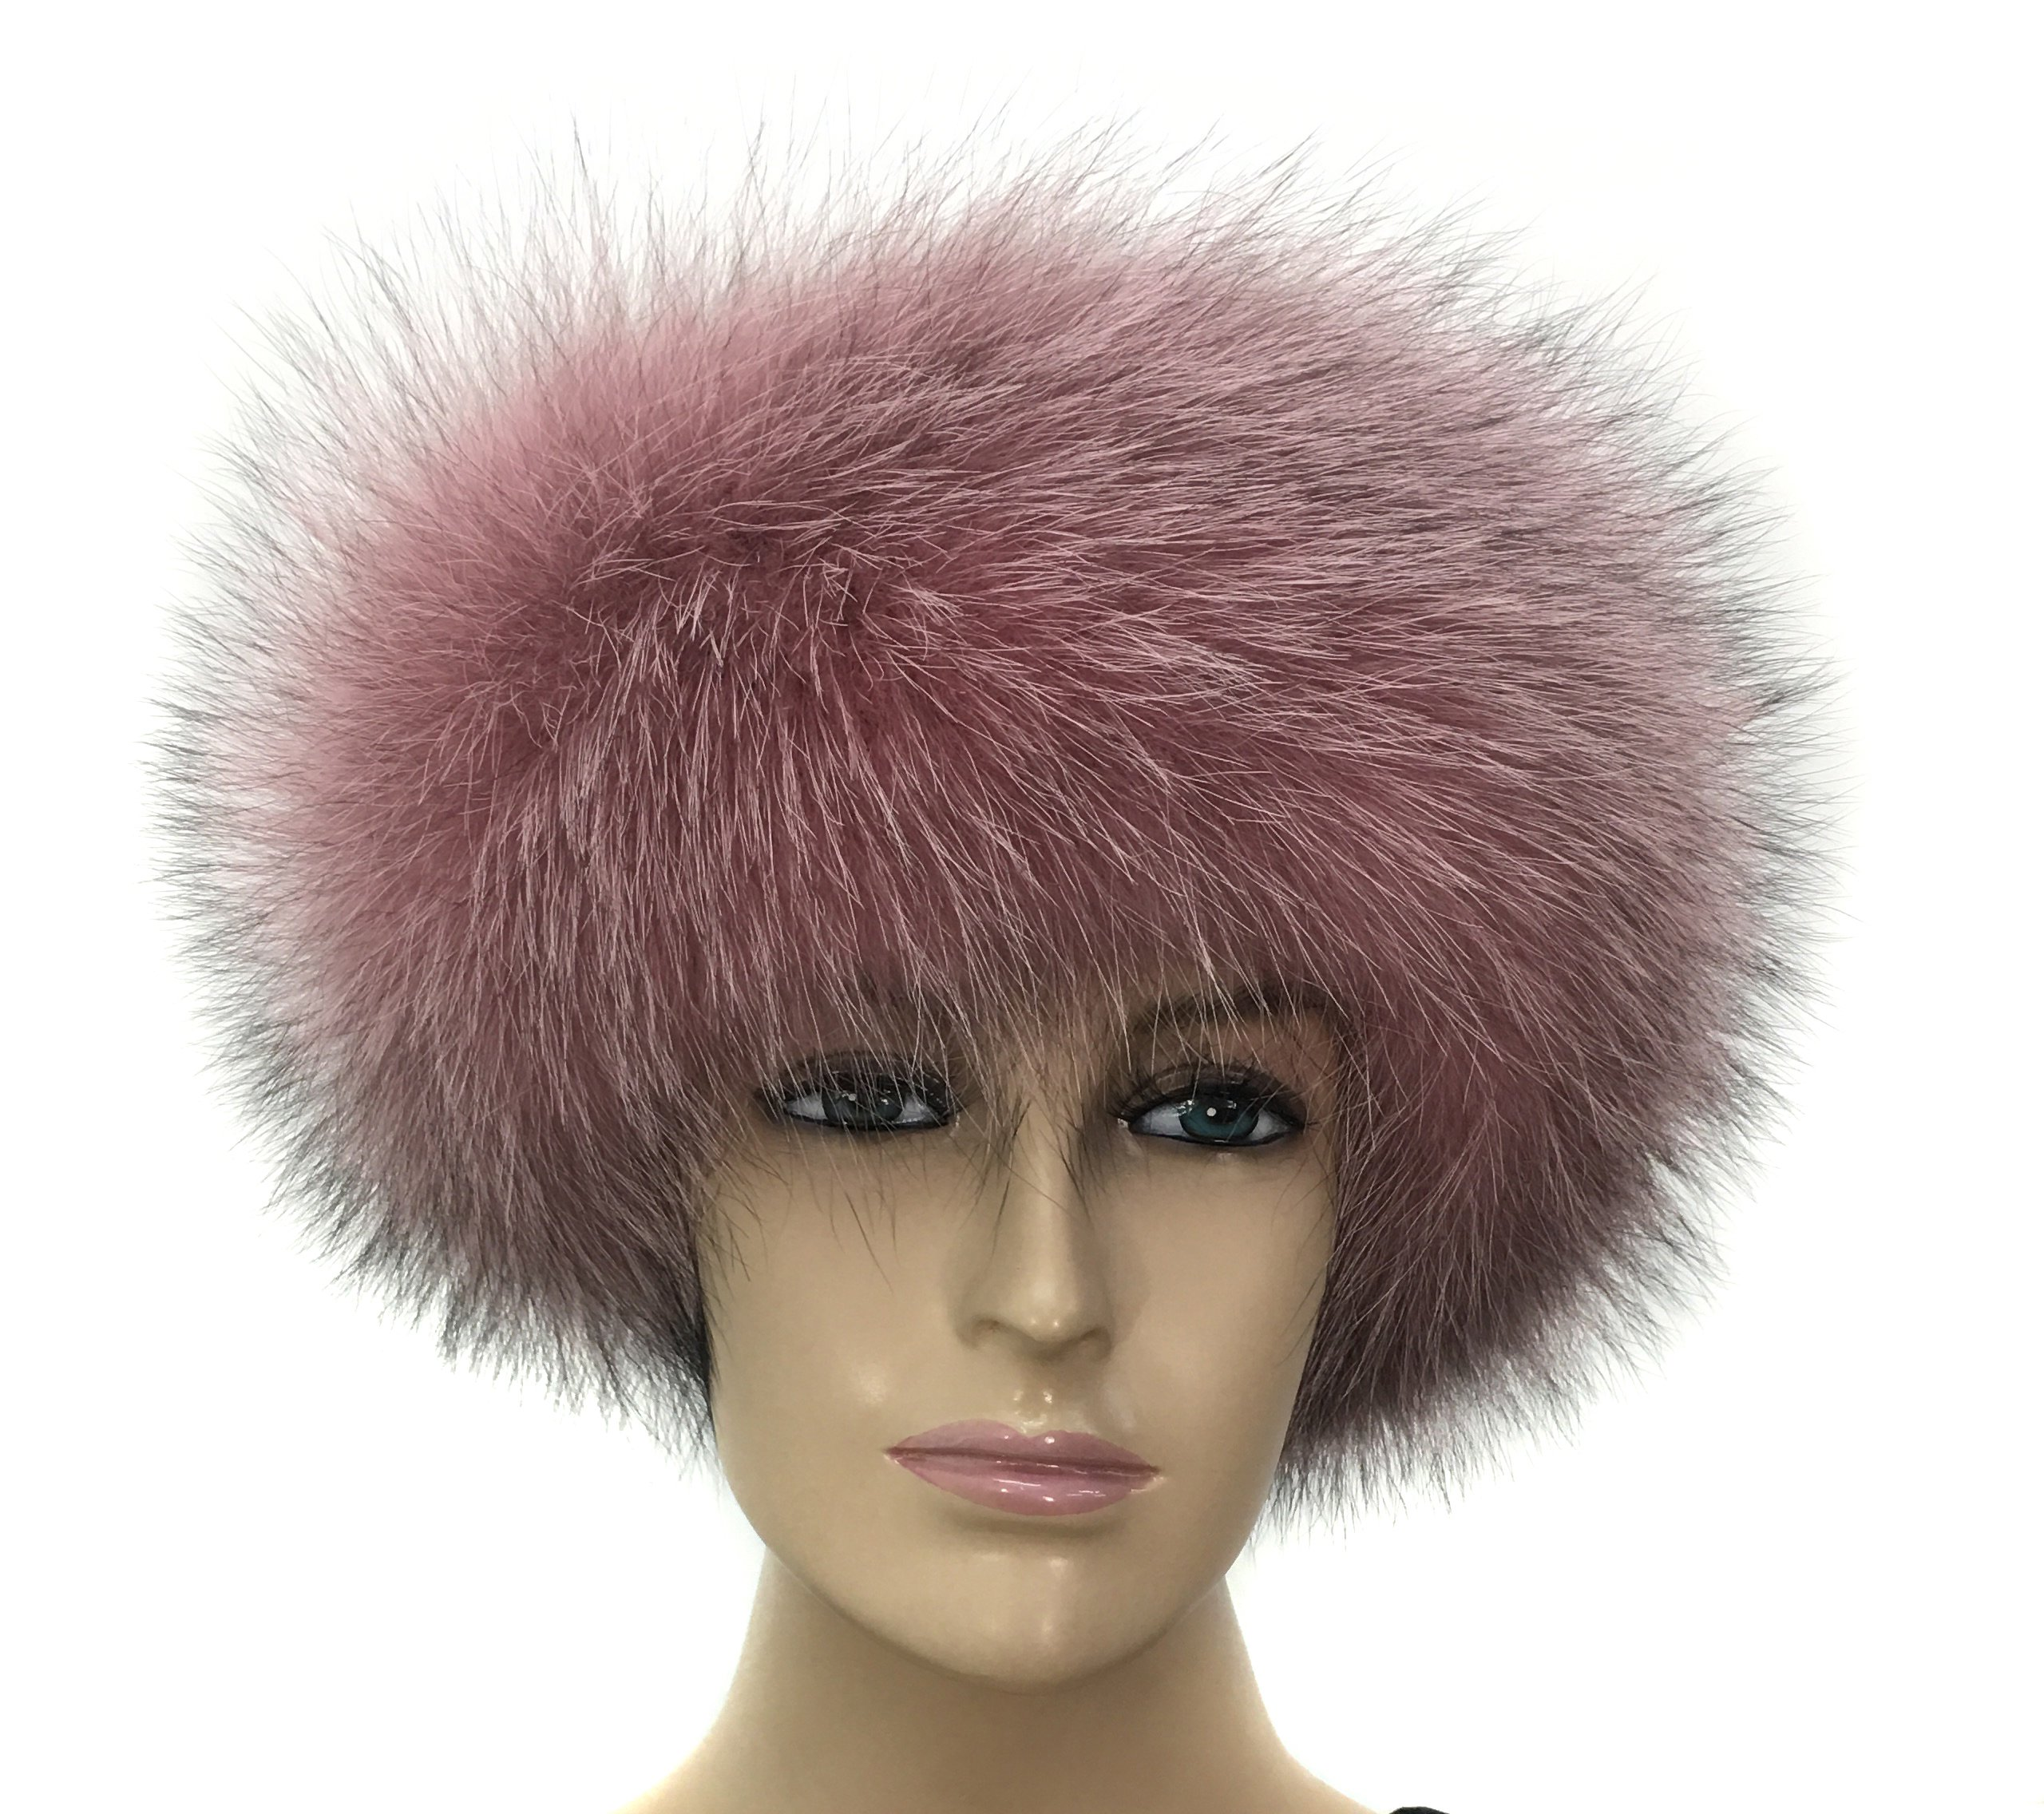 HIMA 100% Real Fox Fur Headband (Peach/Black) by Hima